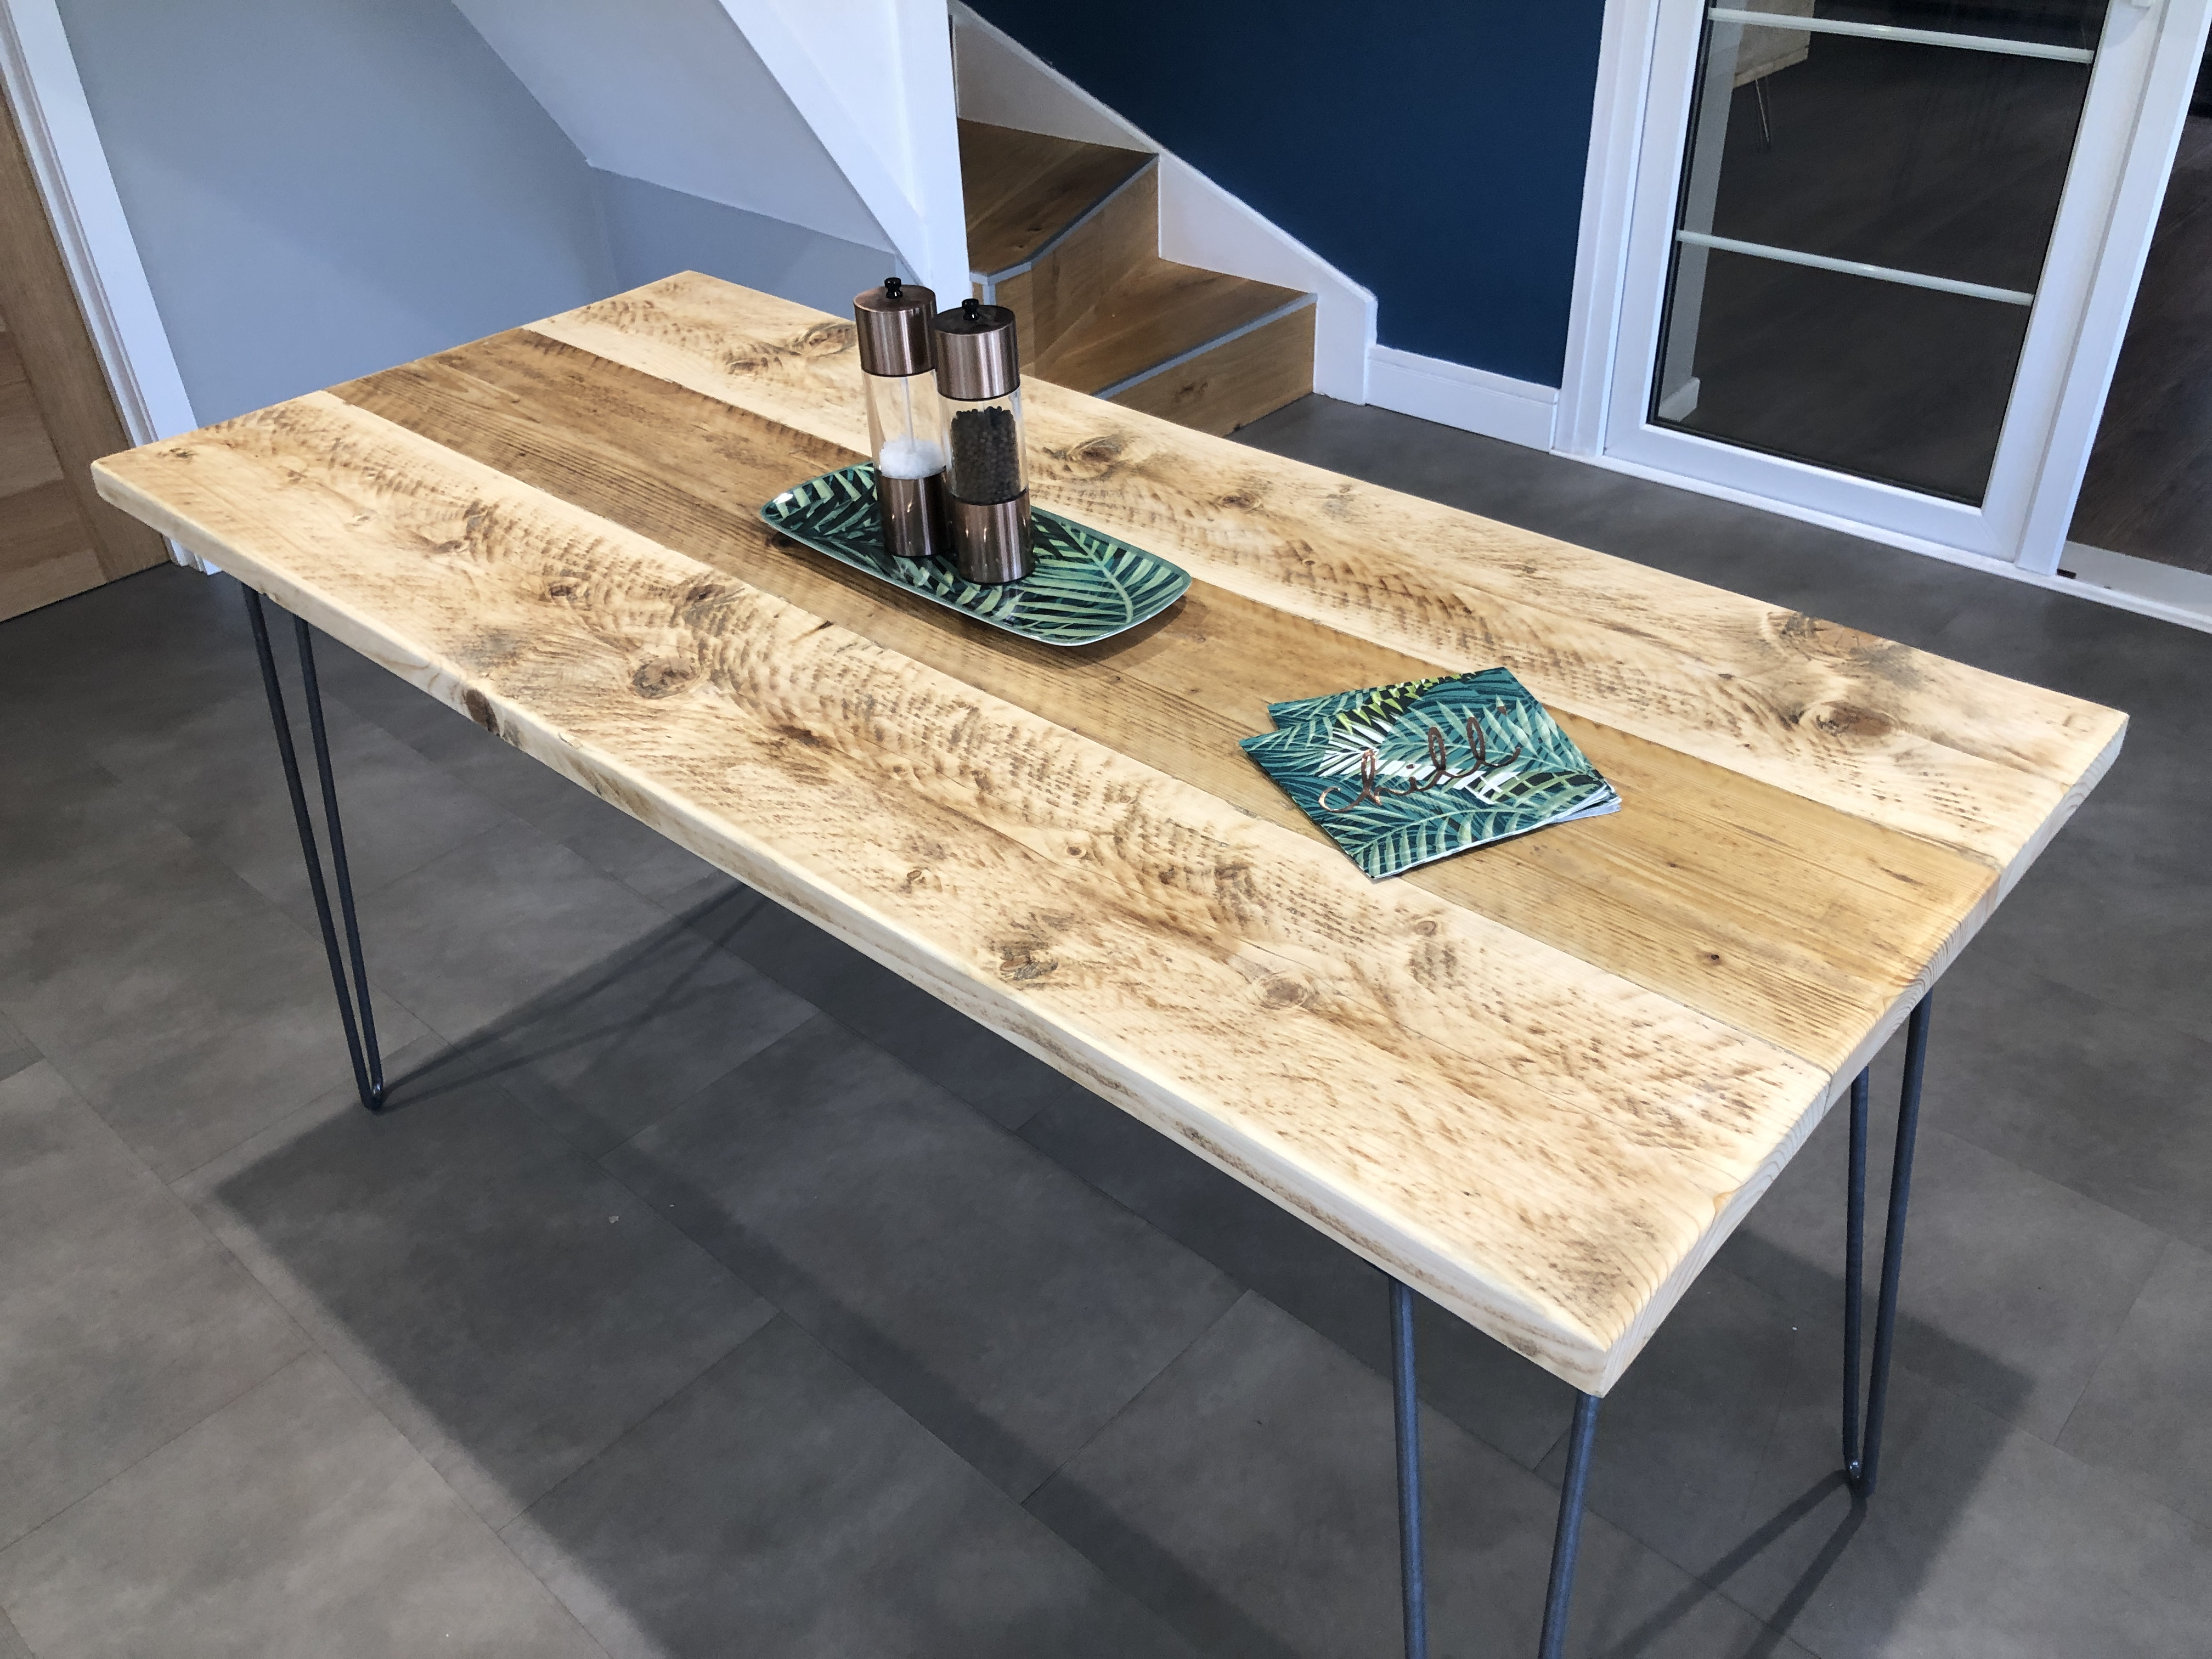 How To Make A 4 6 Seater Dining Table From Reclaimed Scaffold Boards Friday Ad Blog